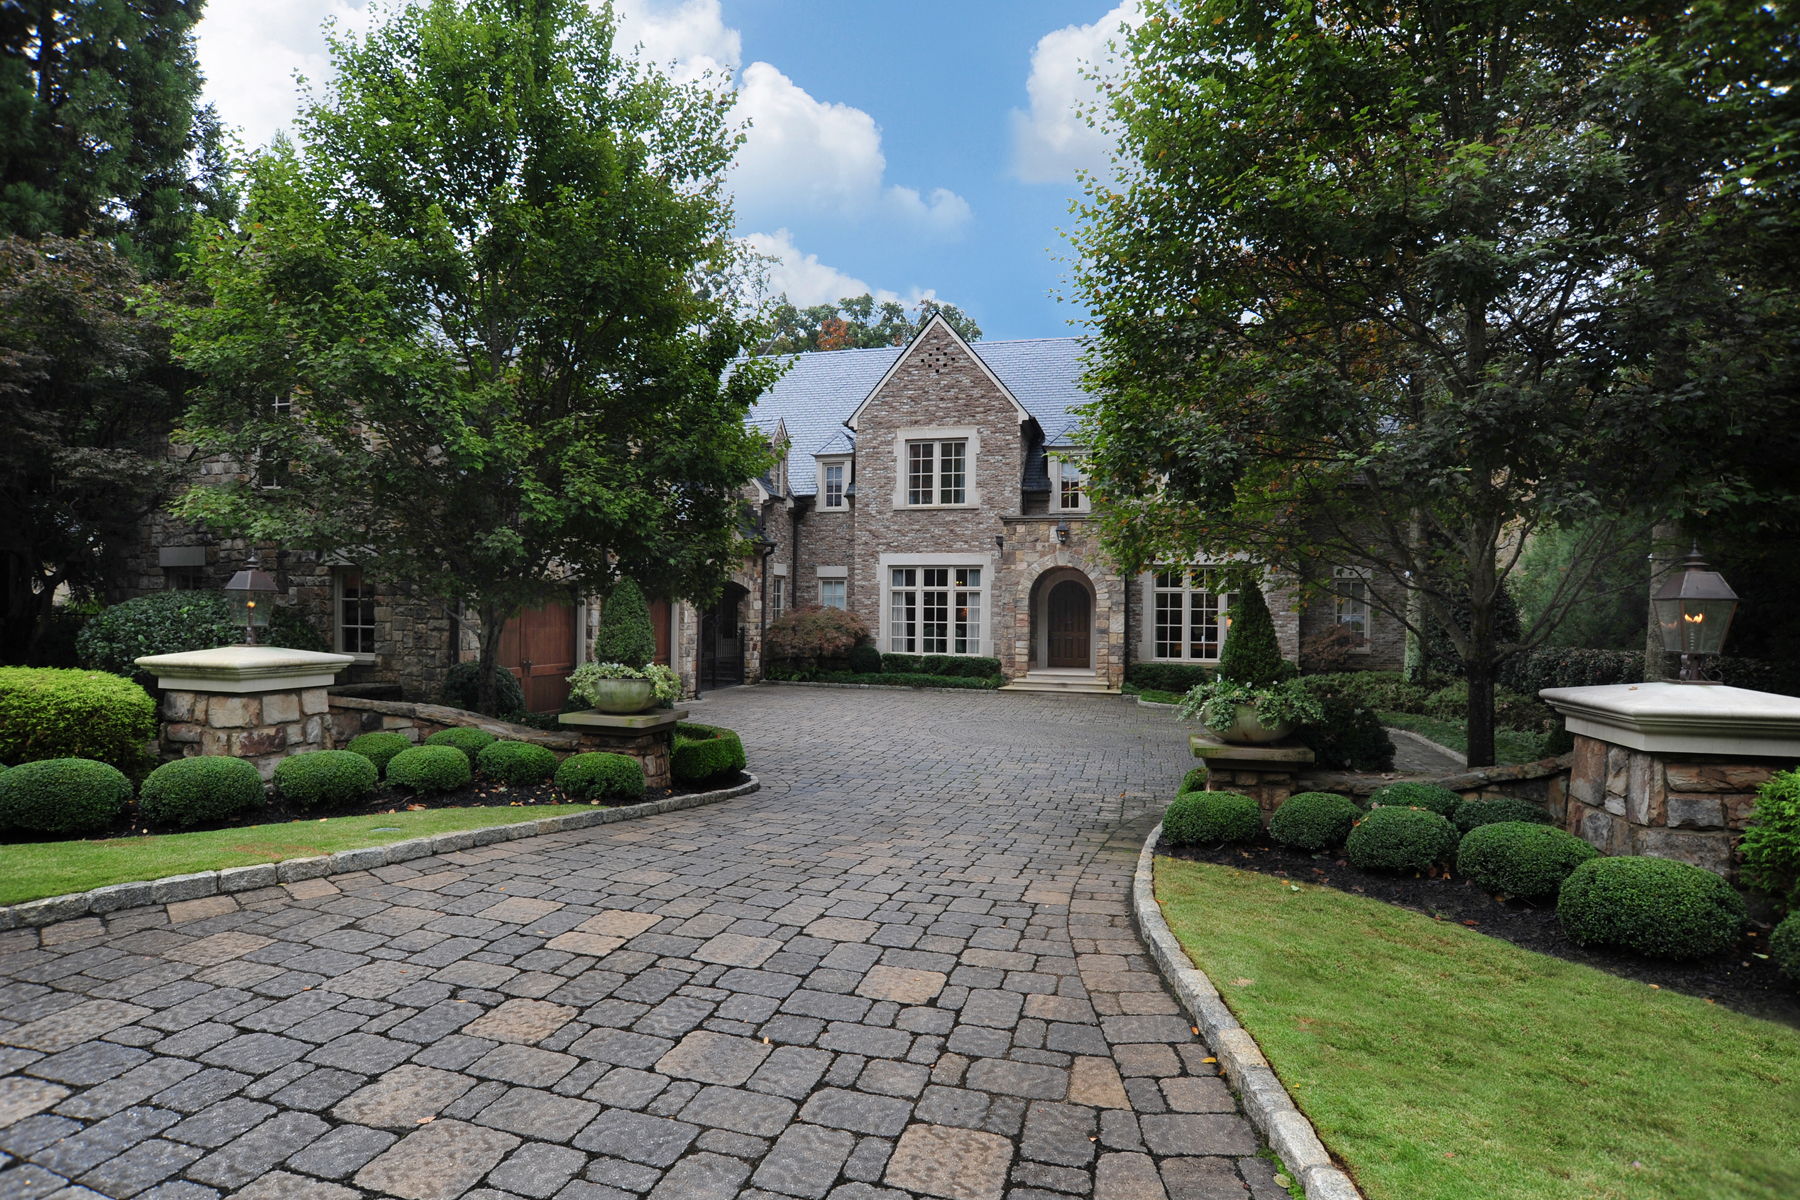 Casa para uma família para Venda às Refined Elegance In Atlanta's Most Prestigious Neighborhood 675 West Paces Ferry Road NW Home 4 Buckhead, Atlanta, Geórgia, 30327 Estados Unidos